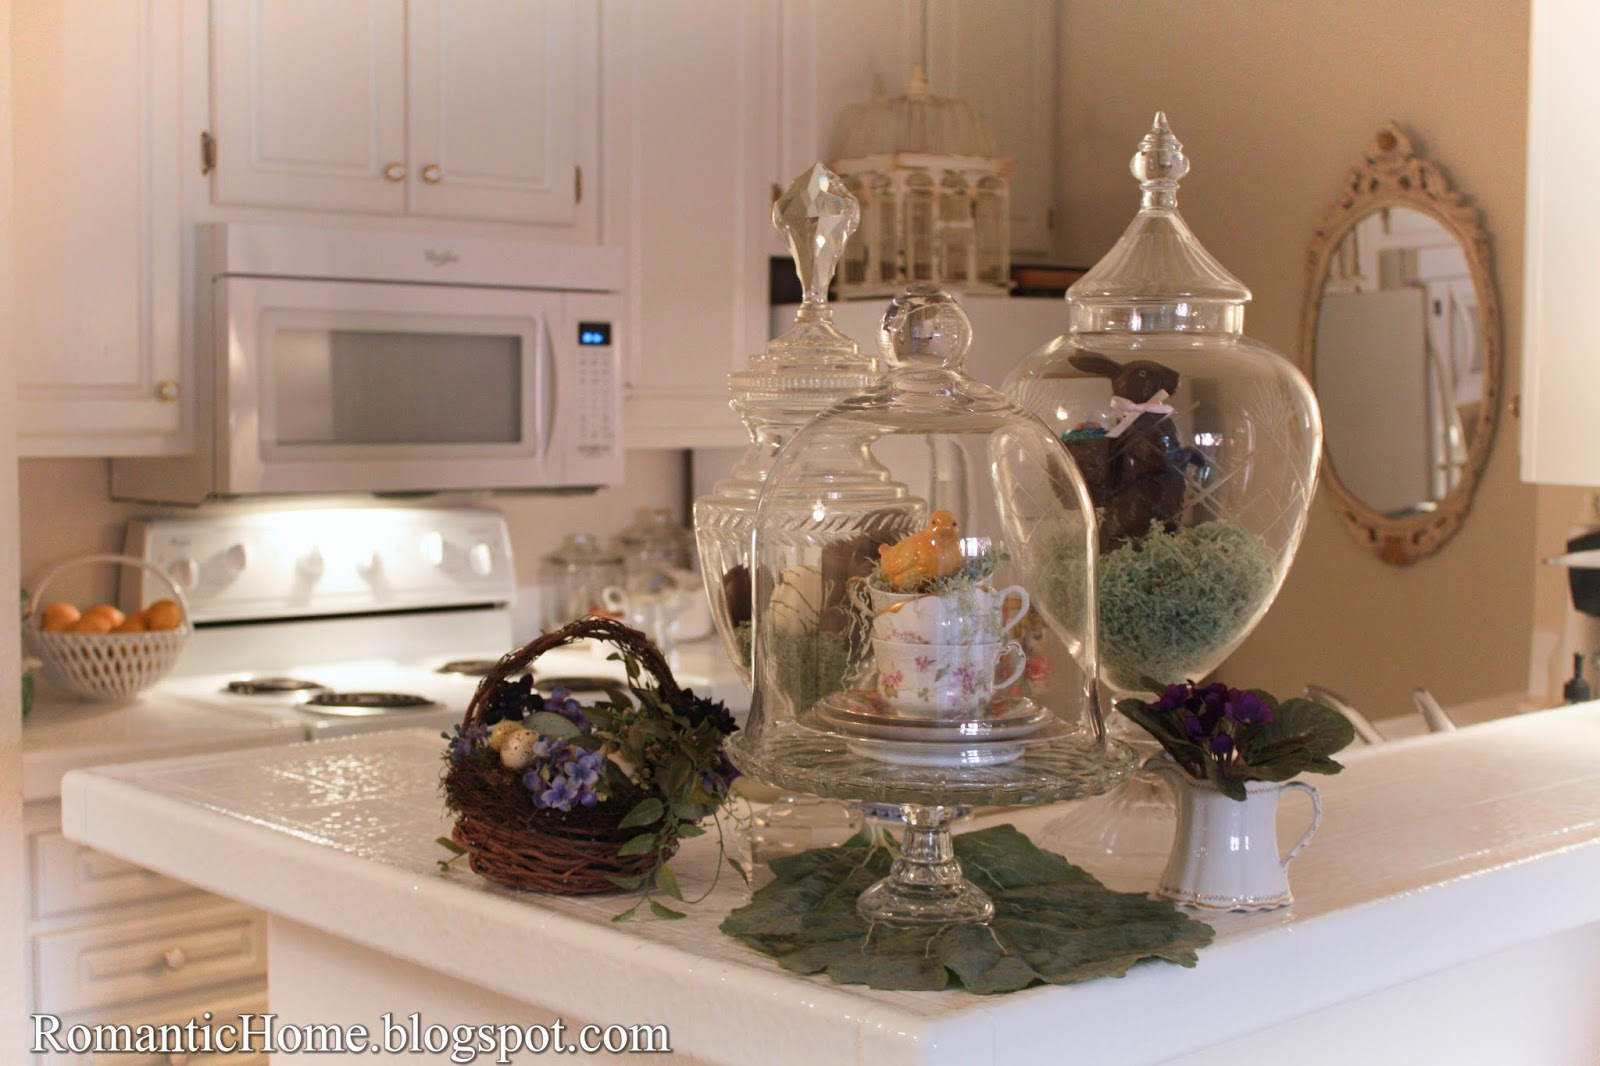 My romantic home a little kitchen easter decor show and for Kitchen decoration designs